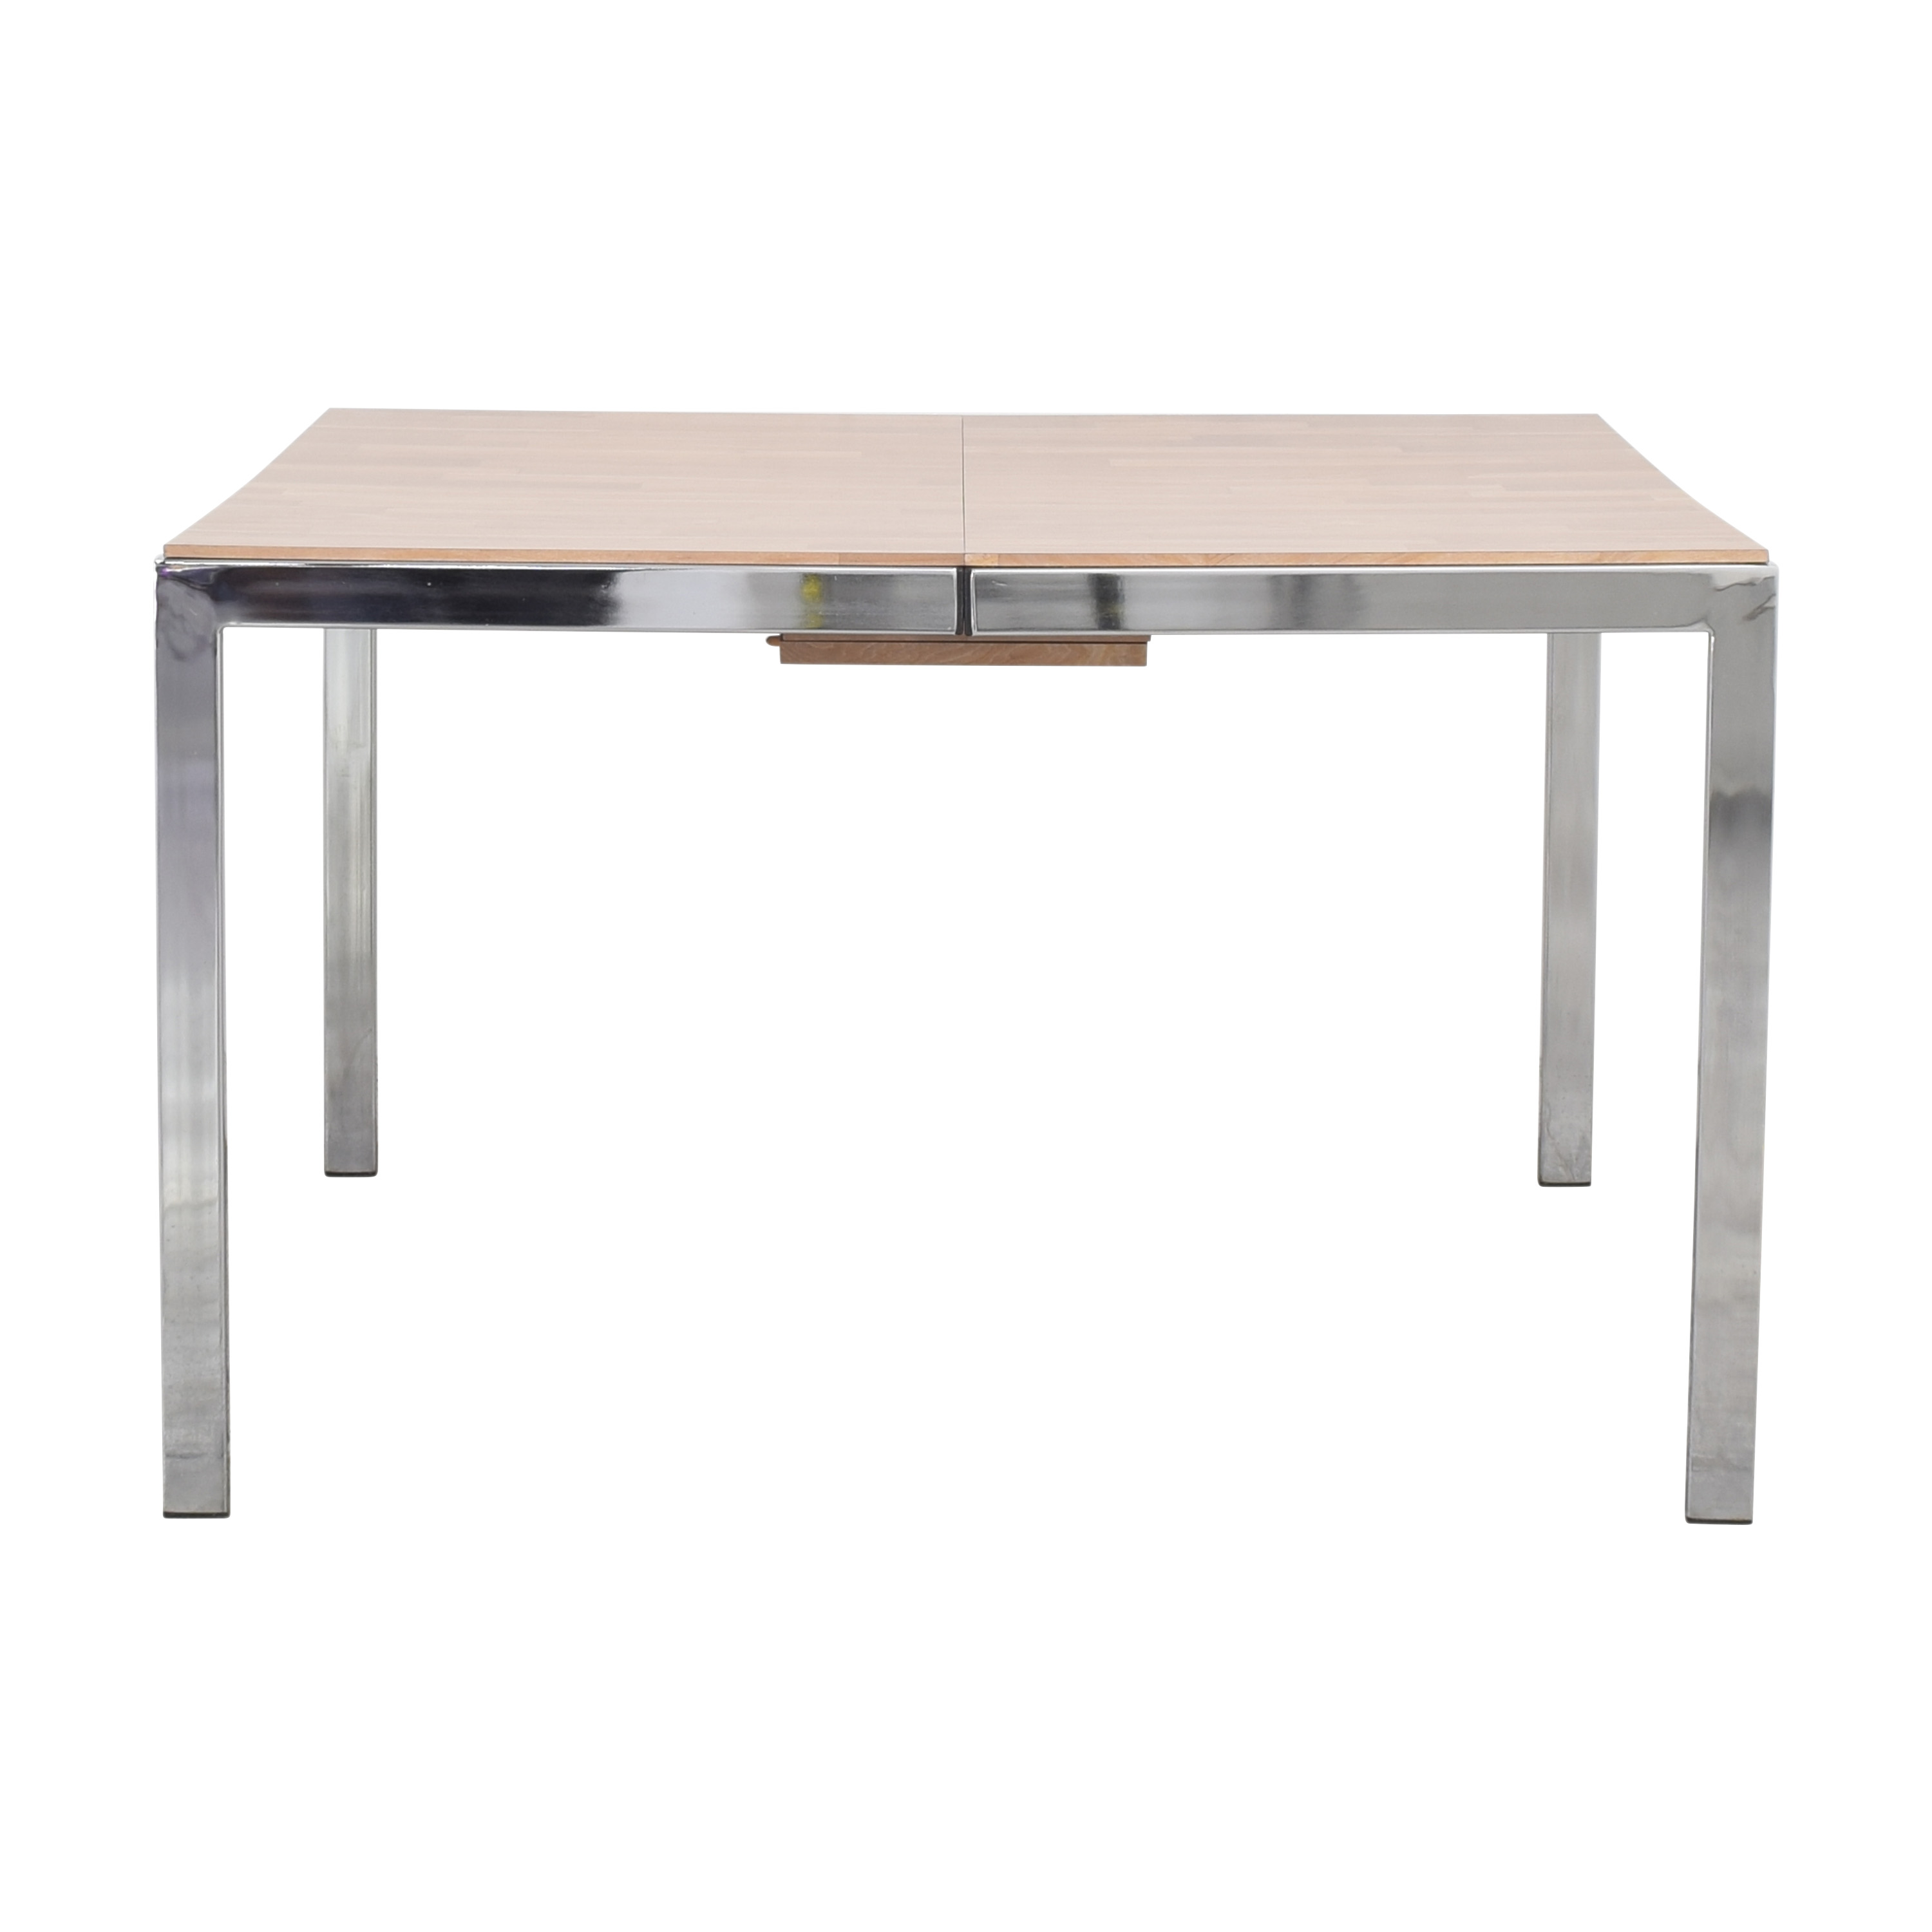 Macy's Macy's Vintage Extendable Dining Table coupon